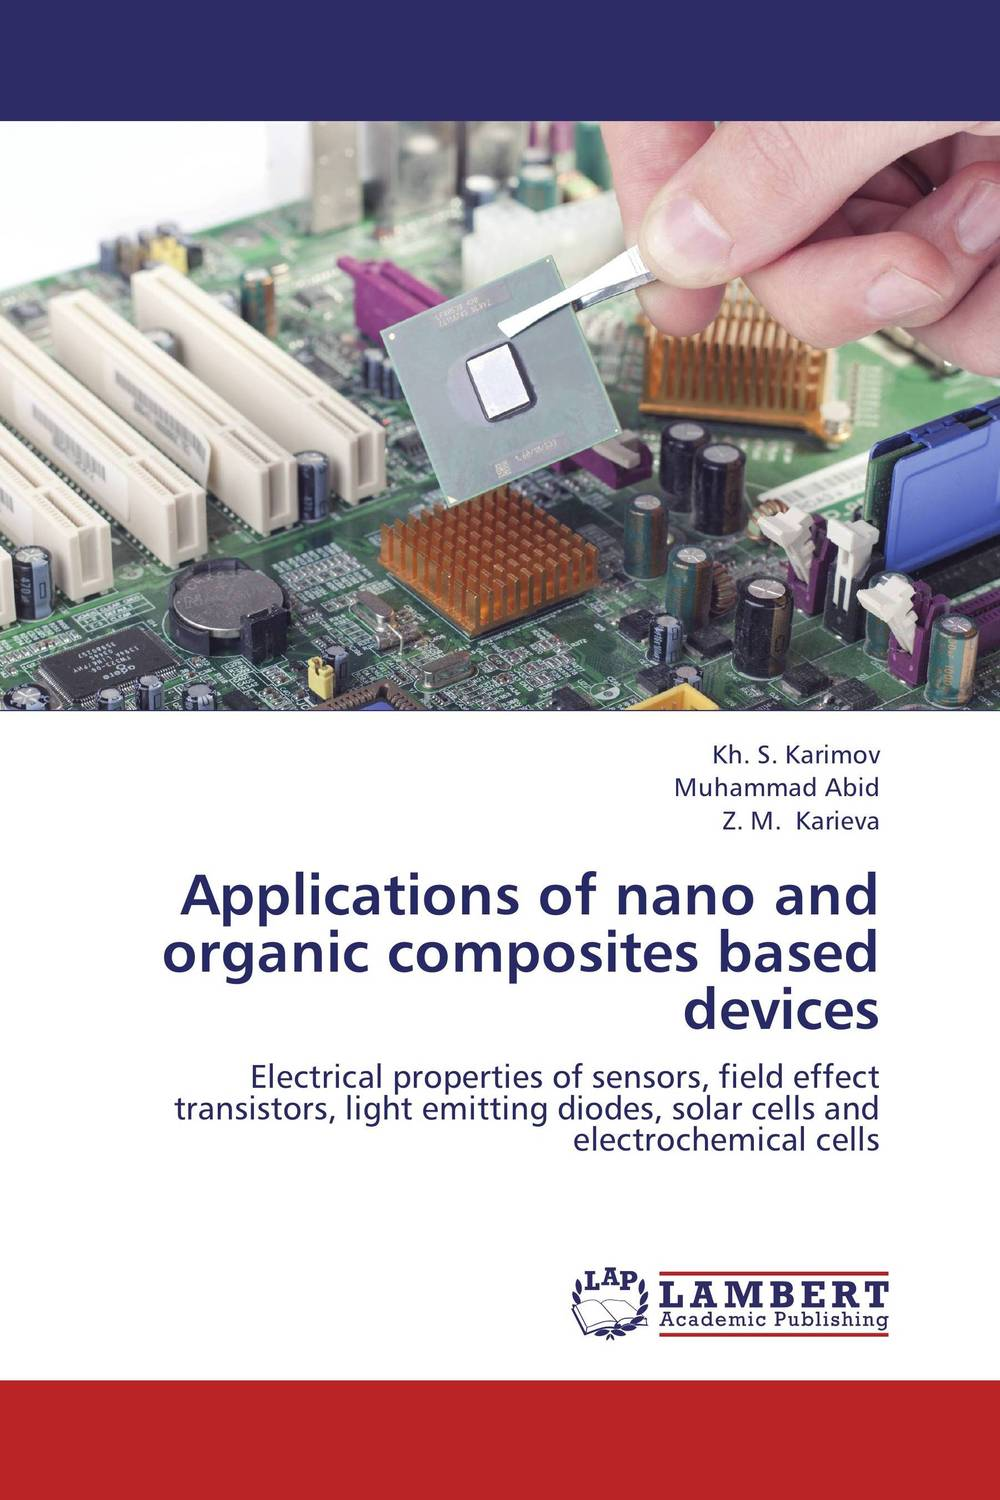 Applications of nano and organic composites based devices dennis hall g boronic acids preparation and applications in organic synthesis medicine and materials